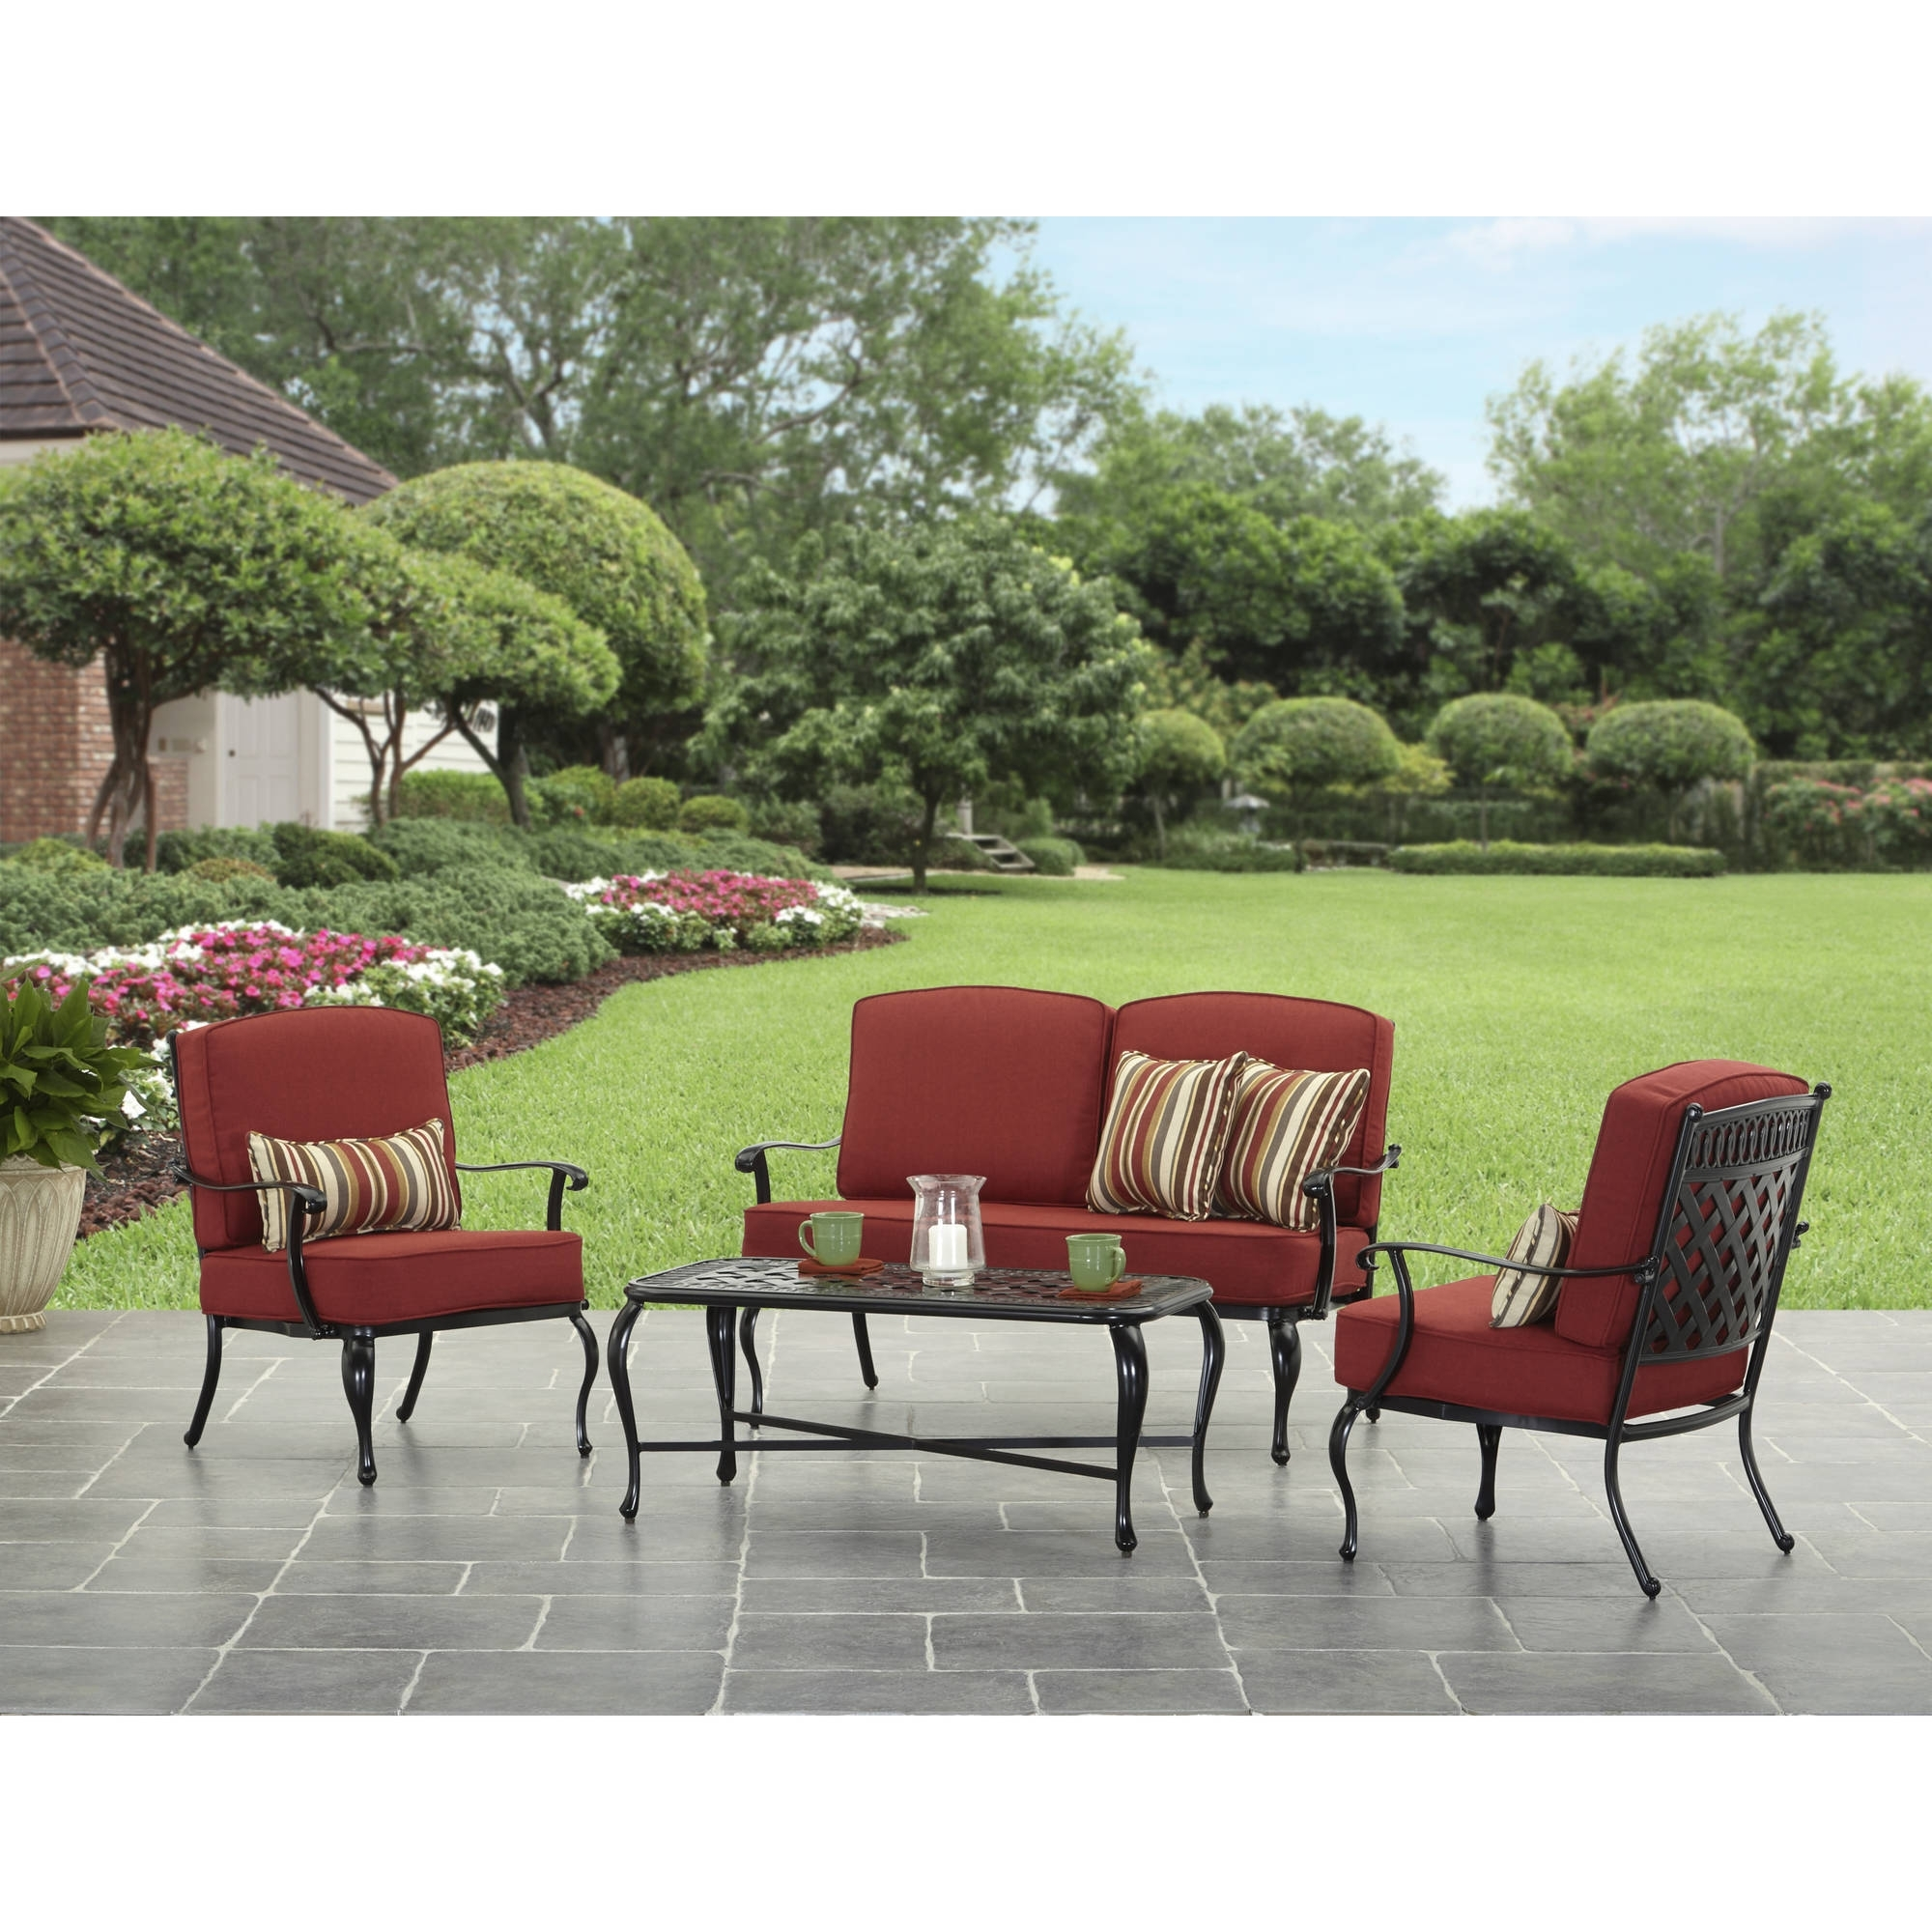 Better Homes And Garden Dawn Hill 4 Piece Outdoor Conversation Set With Regard To Newest Dot Patio Conversation Sets (View 1 of 20)